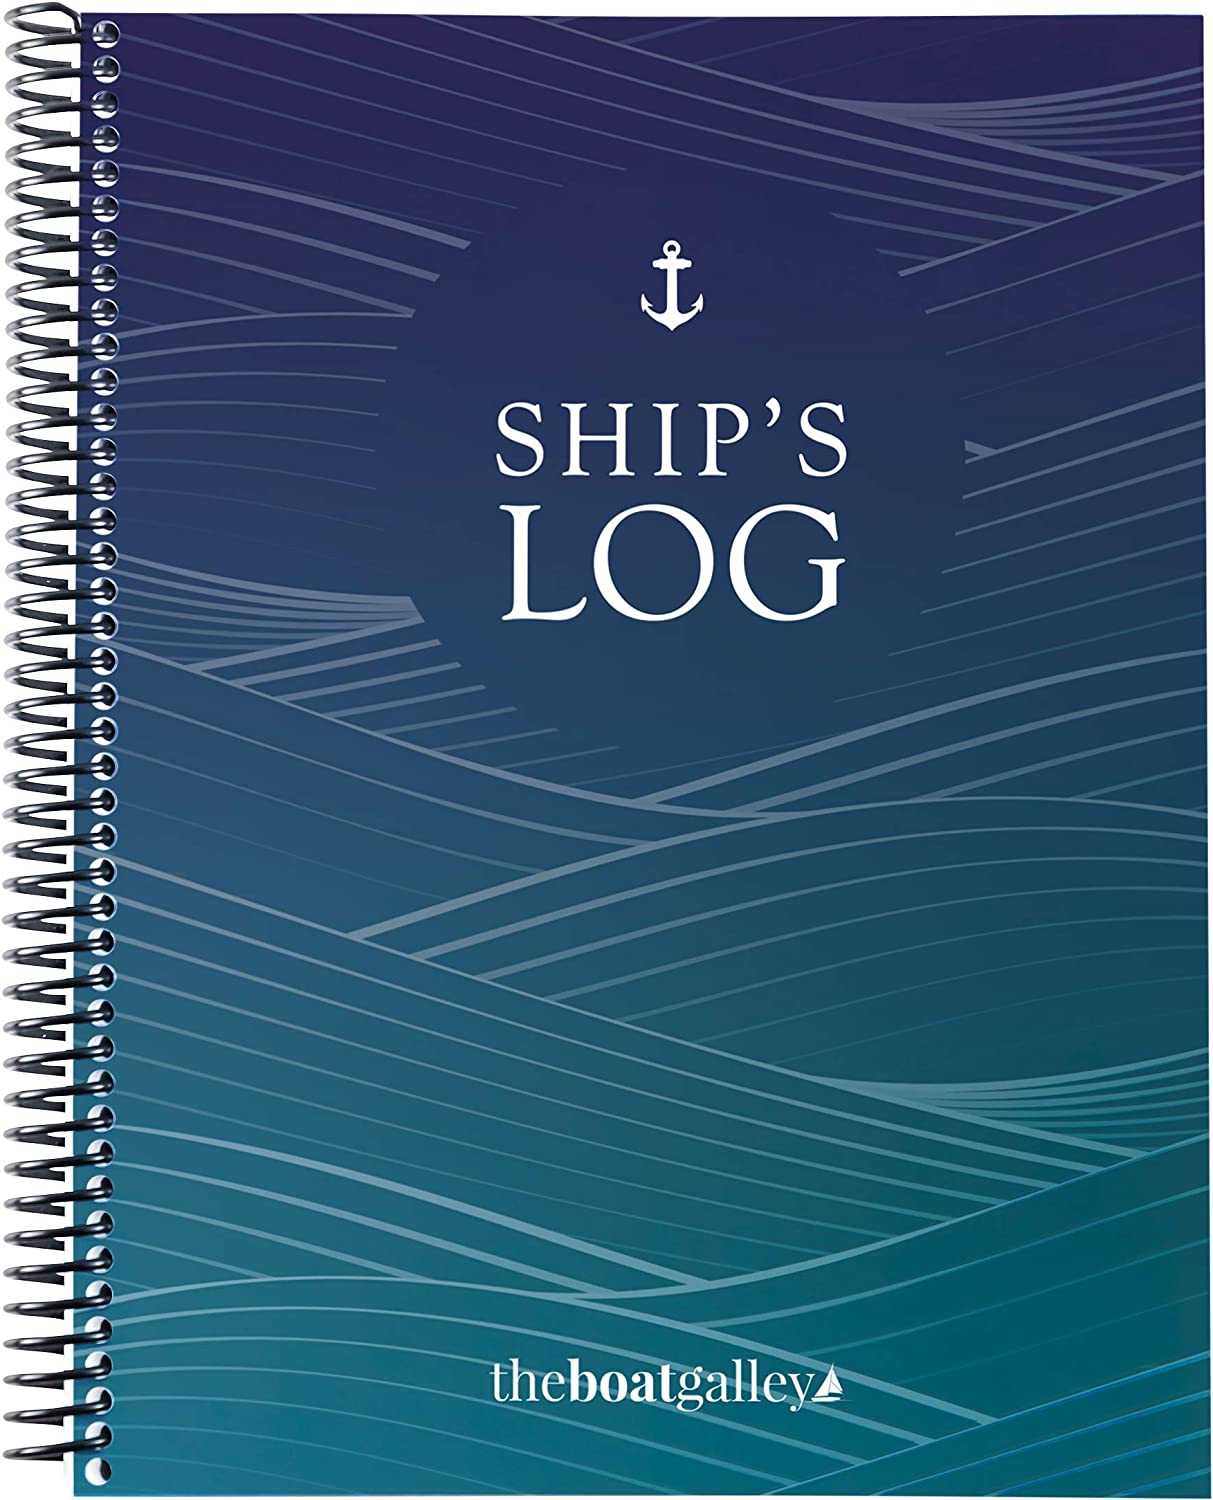 The Boat Galley Ship's Log: Ranking TOP14 5 Logs Log Cruisi in - Book Watch 1 National uniform free shipping